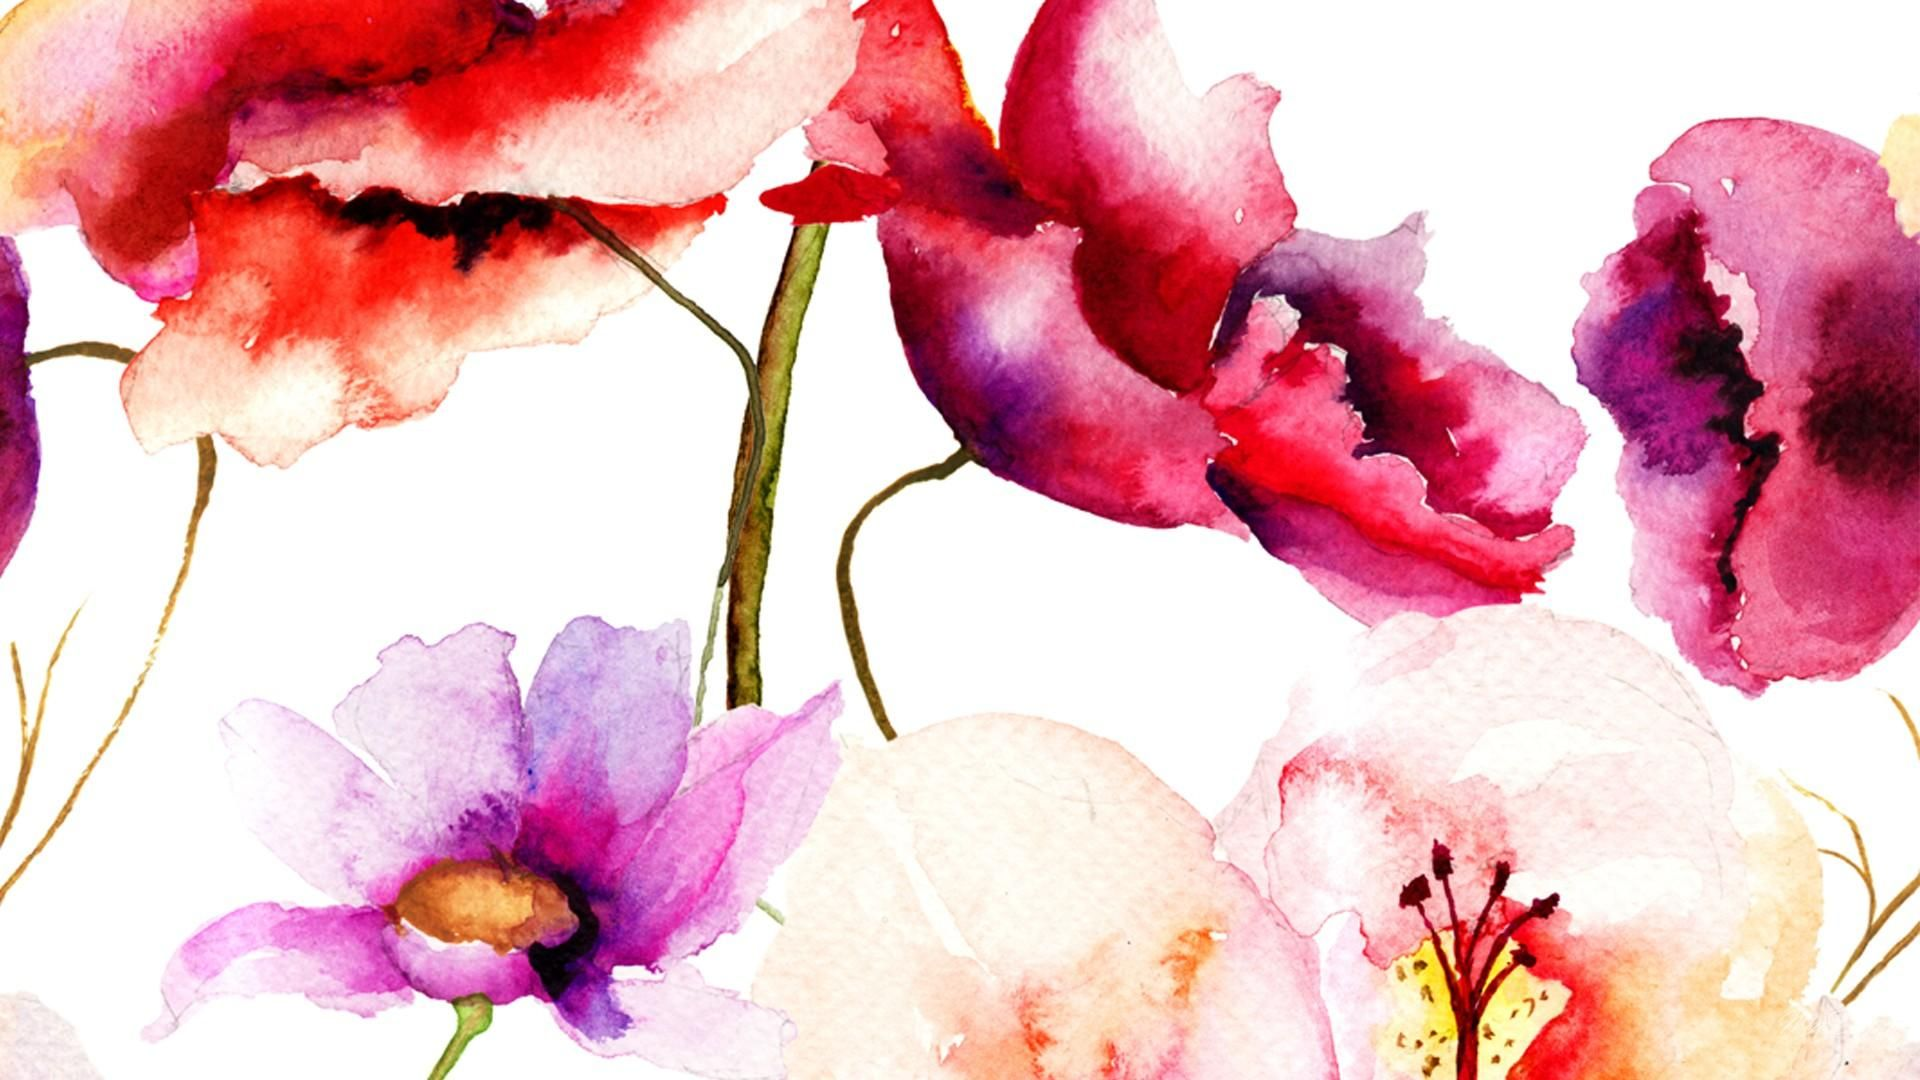 Flower Watercolor Wallpaper Hd 14 High Resolution Wallpaper Full Size Watercolor Desktop Wallpaper Watercolor Flowers Watercolor Wallpaper